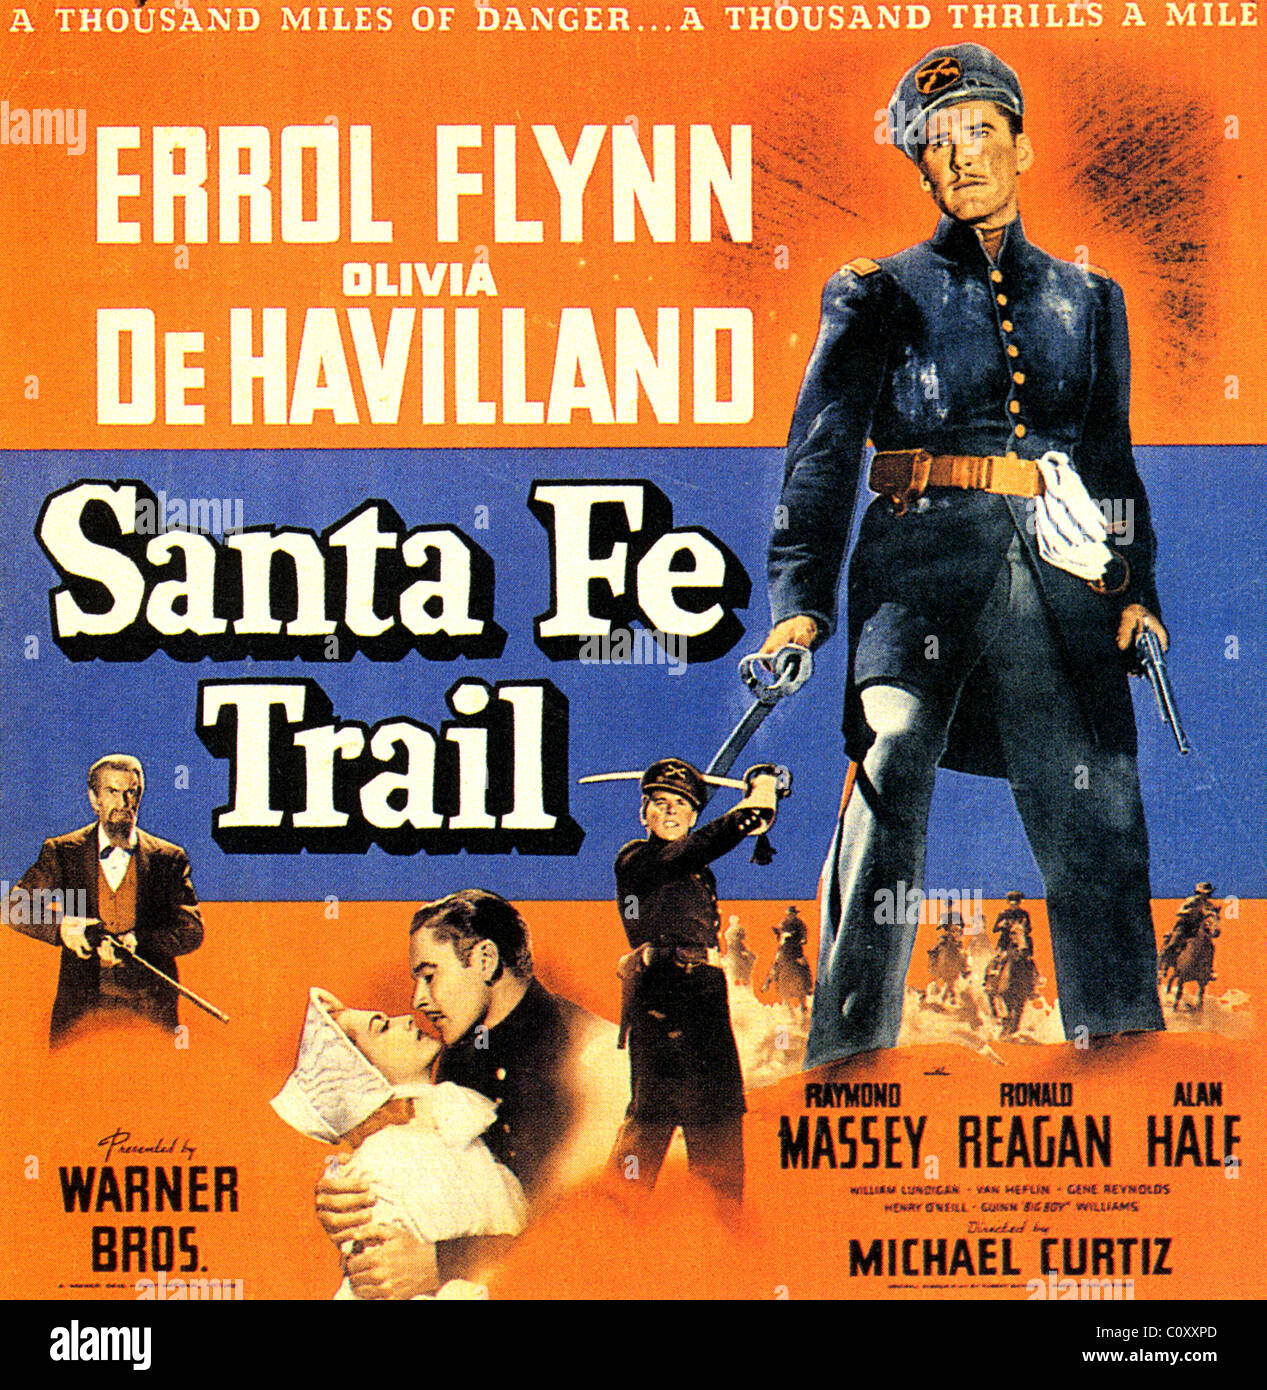 santa fe trail poster for 1940 warner bros film with errol